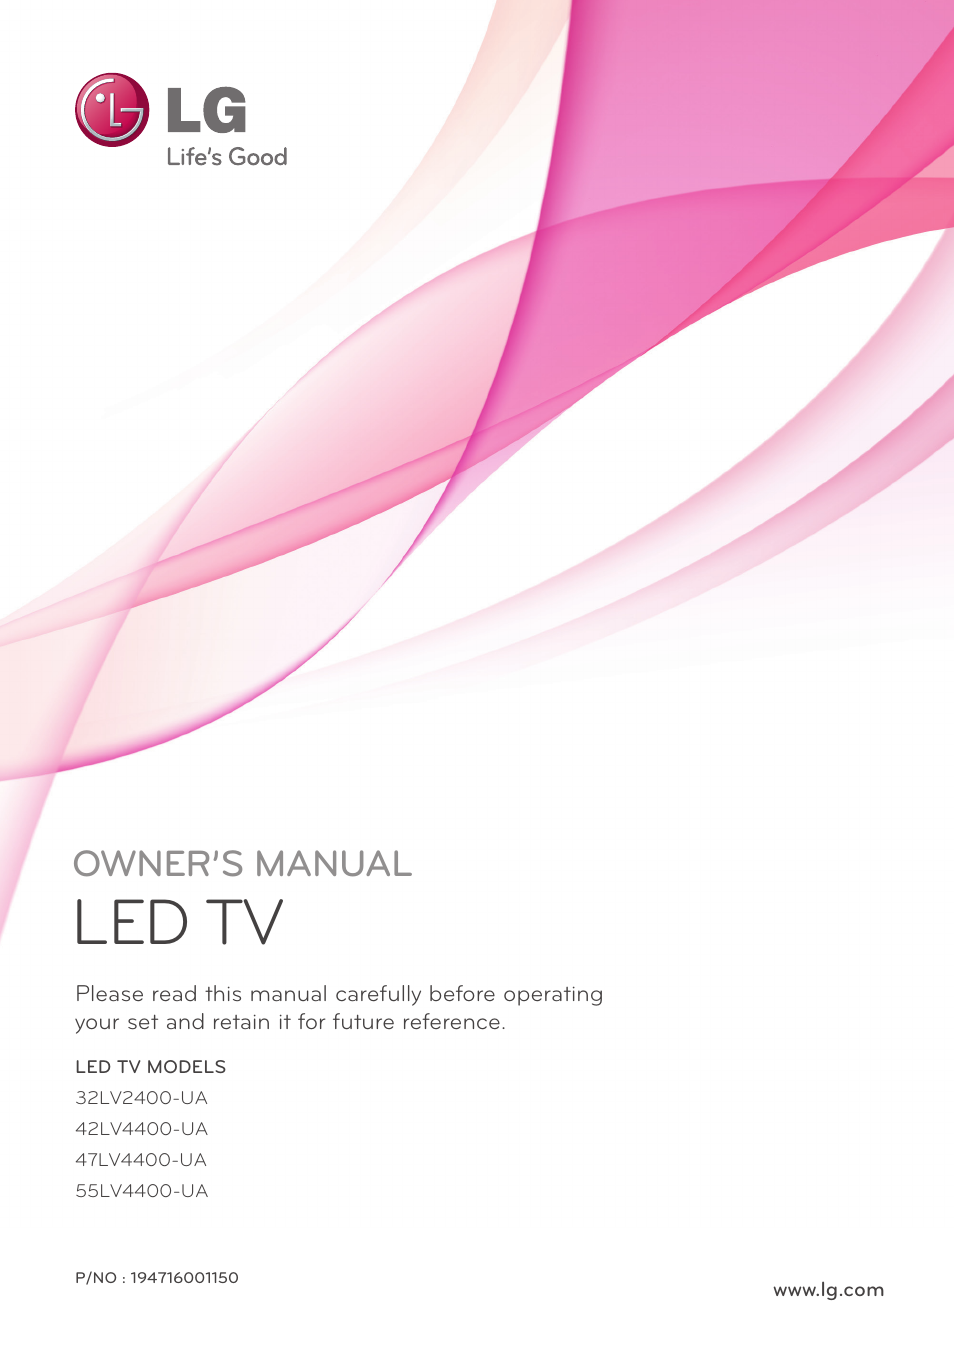 lg 32lv2400 user manual 64 pages also for 55lv4400 47lv4400 rh manualsdir com LG Touch Phone Operating Manual LG Touch Phone Operating Manual